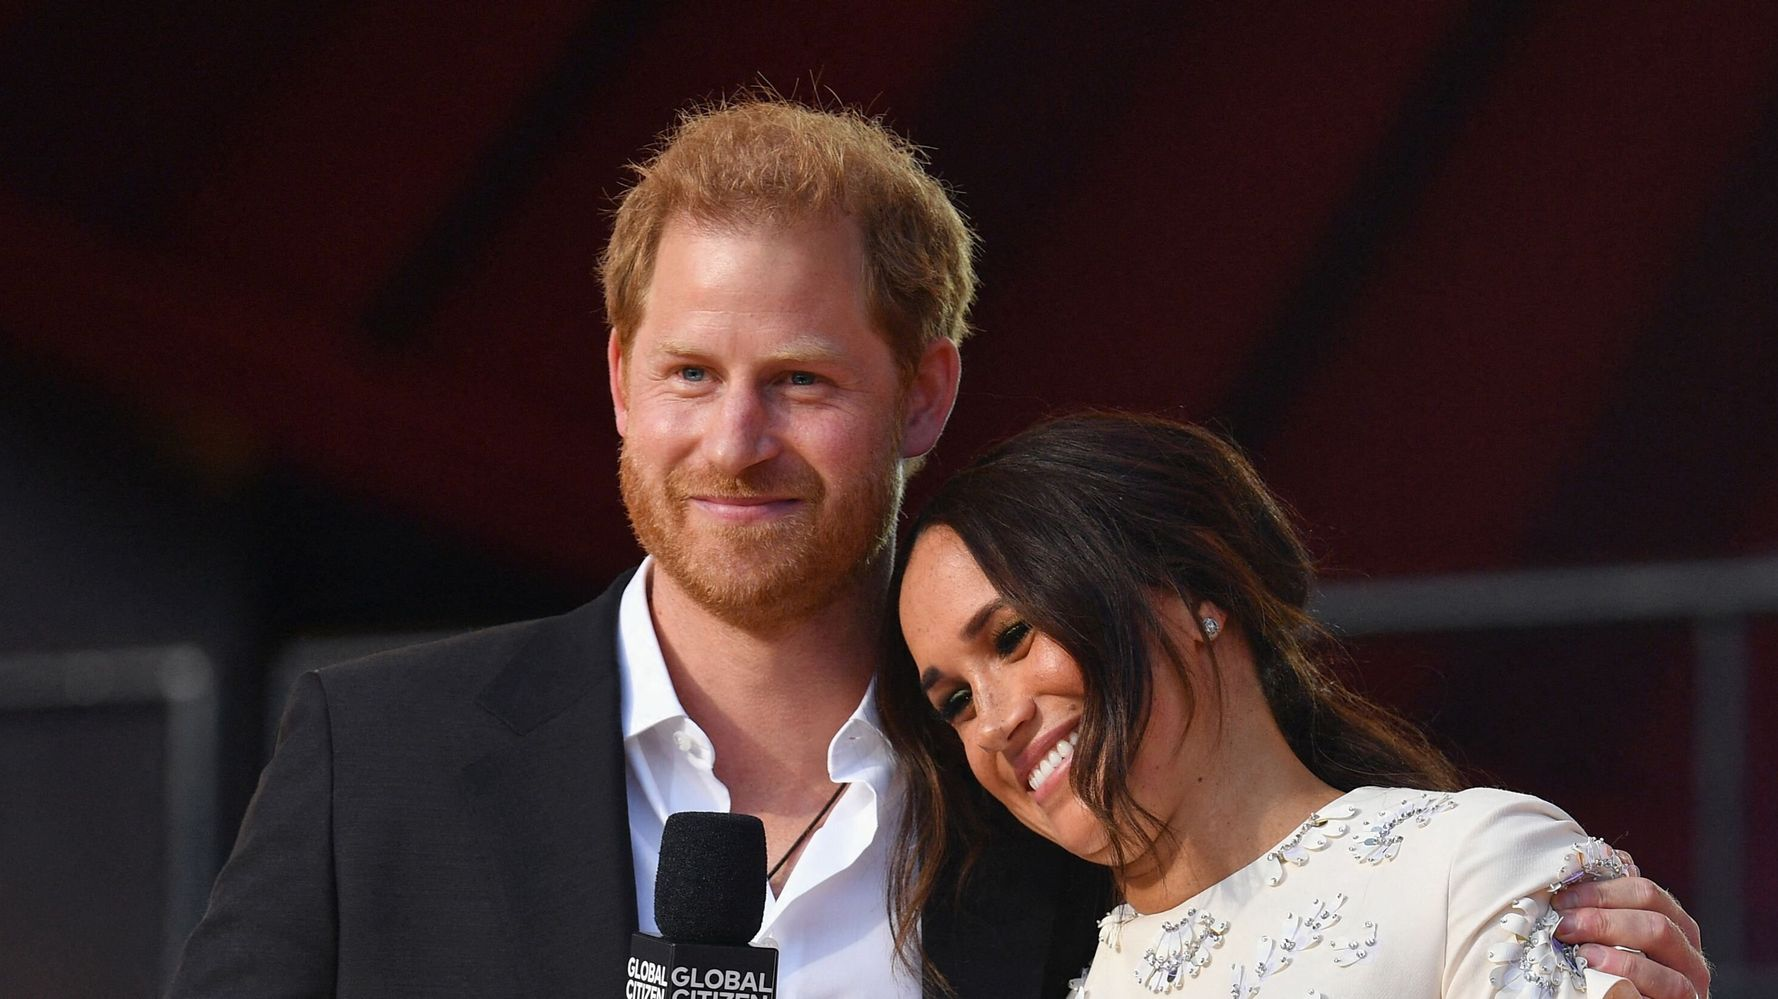 Meghan Markle And Prince Harry's New York City Trip In Photos - HuffPost